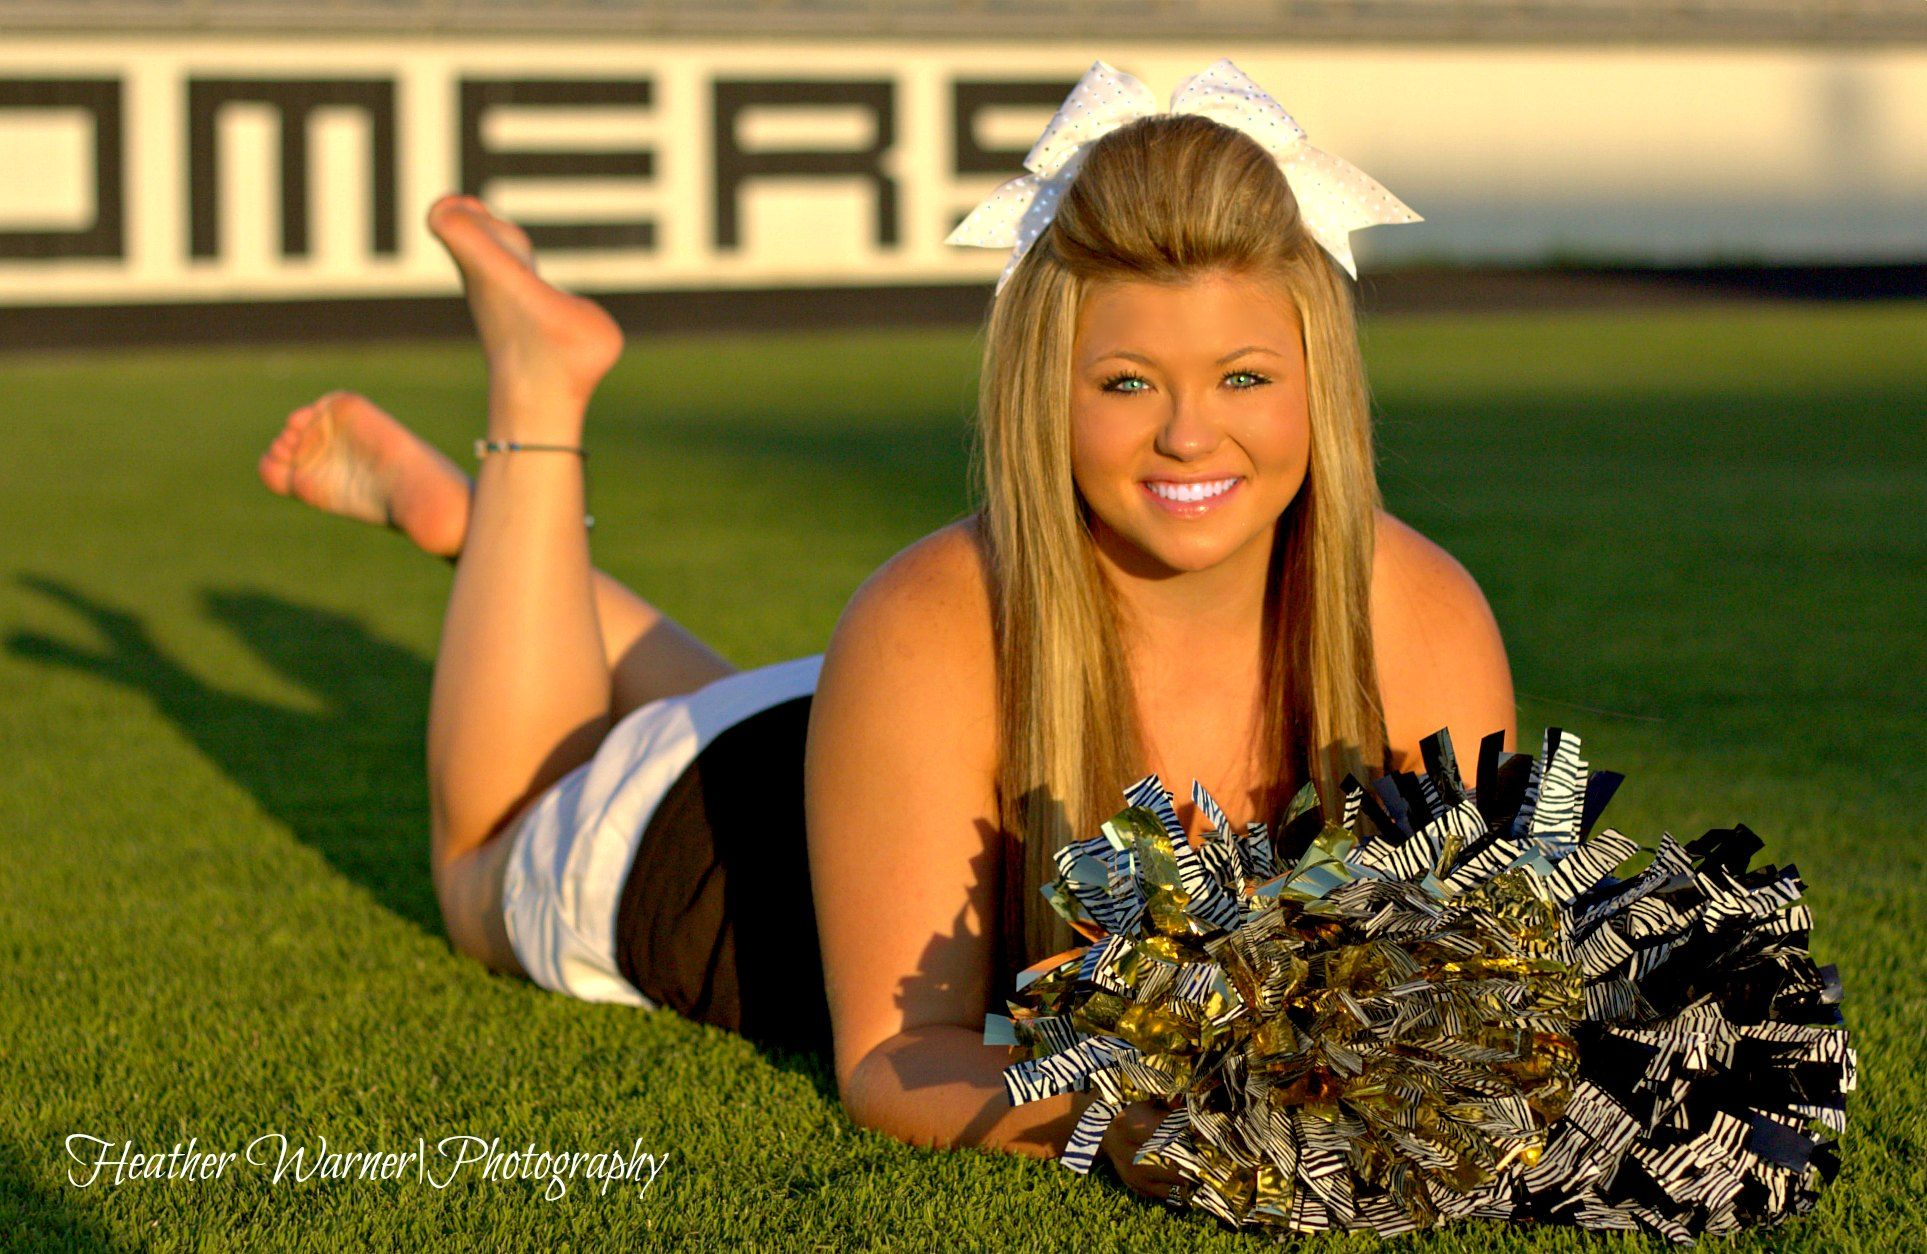 Barefoot Senior Cheerleader Portrait Poses